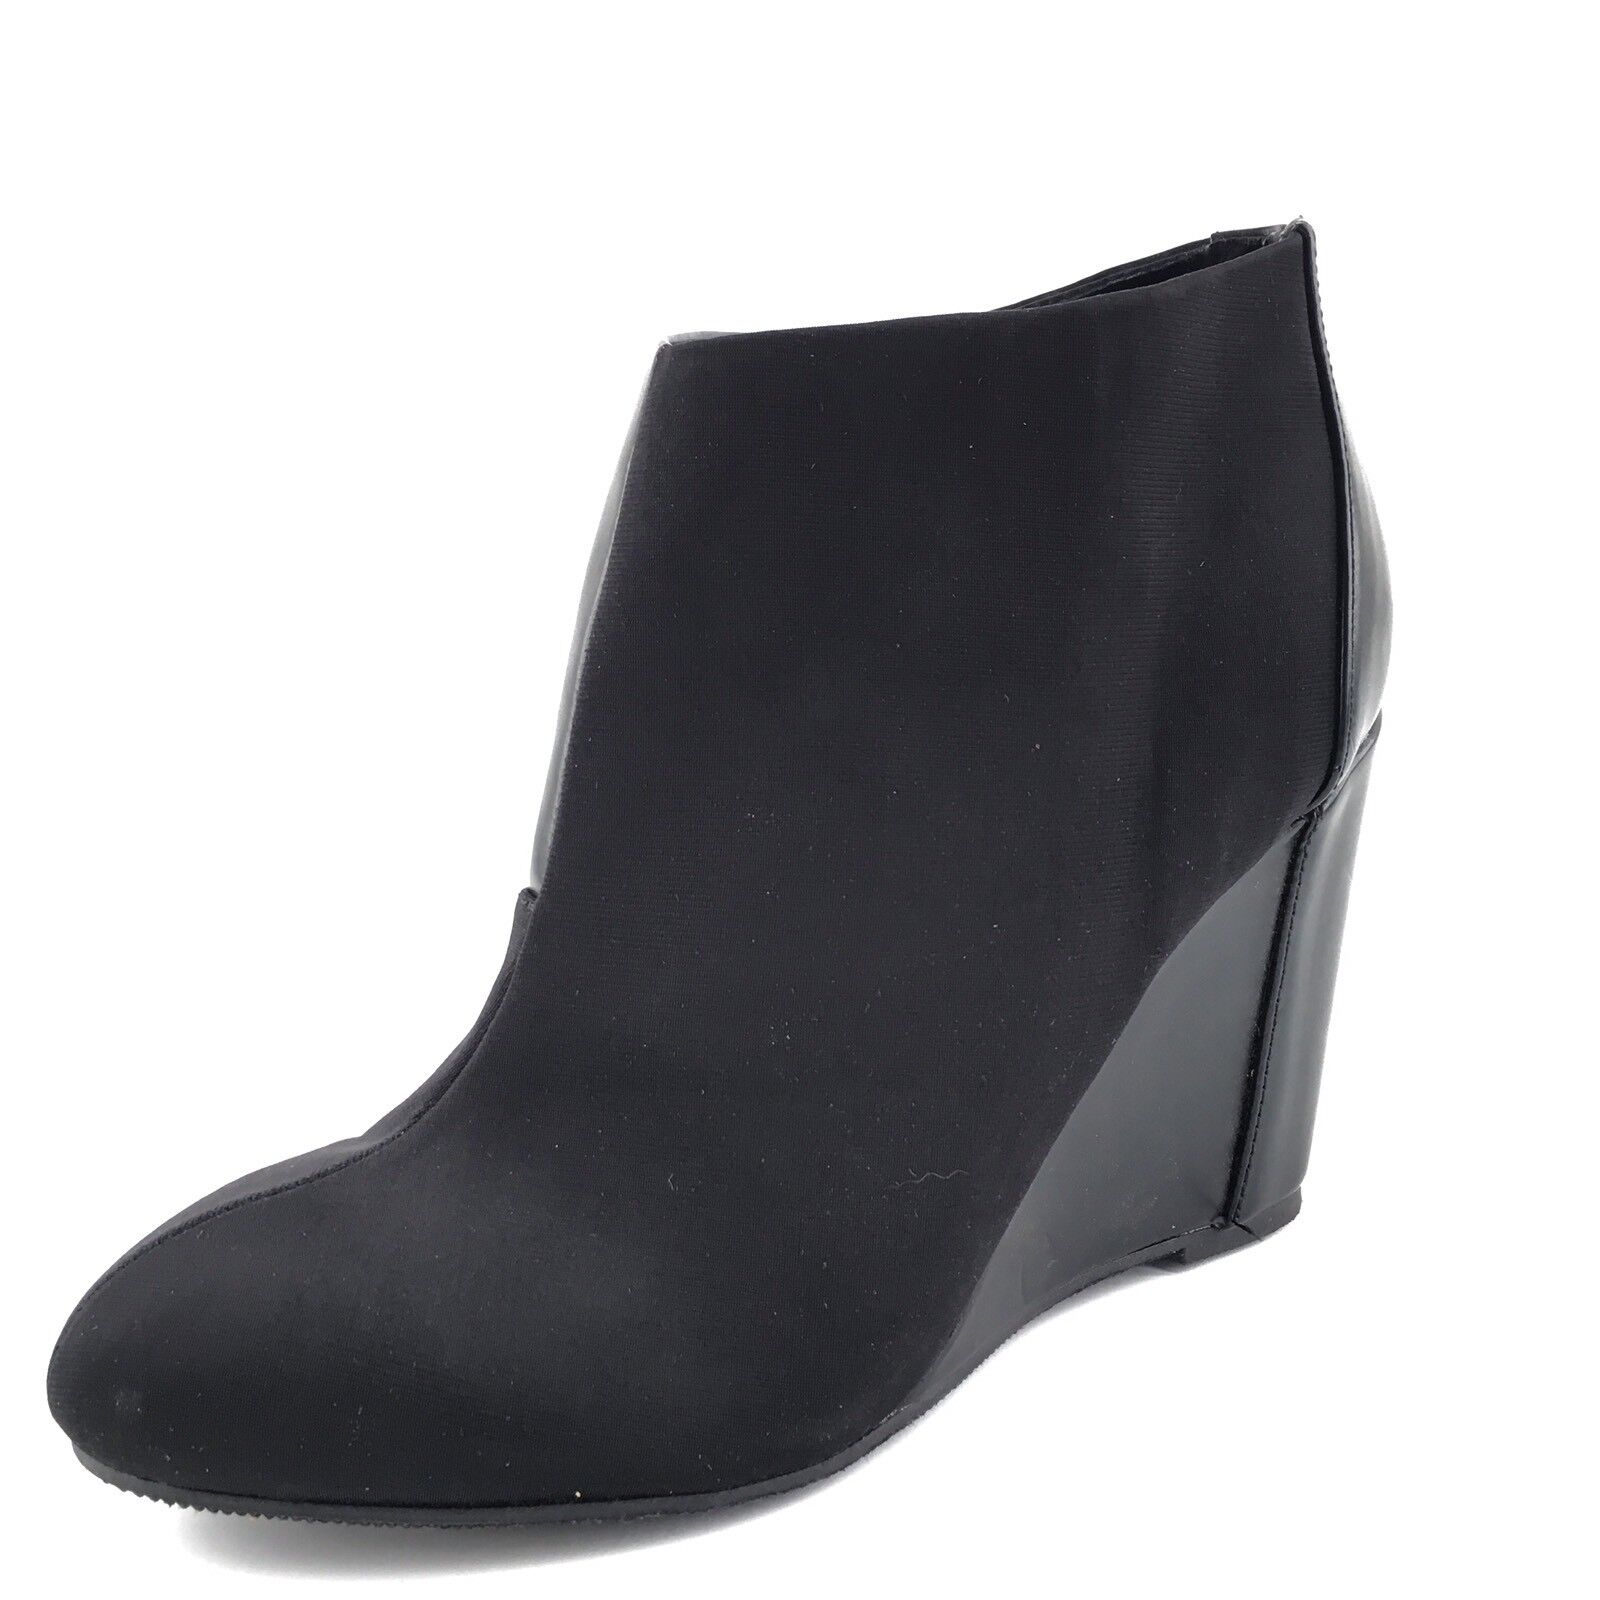 Charles David Canzona Black Leather Wedge Ankle Boots Womens Size 8 M